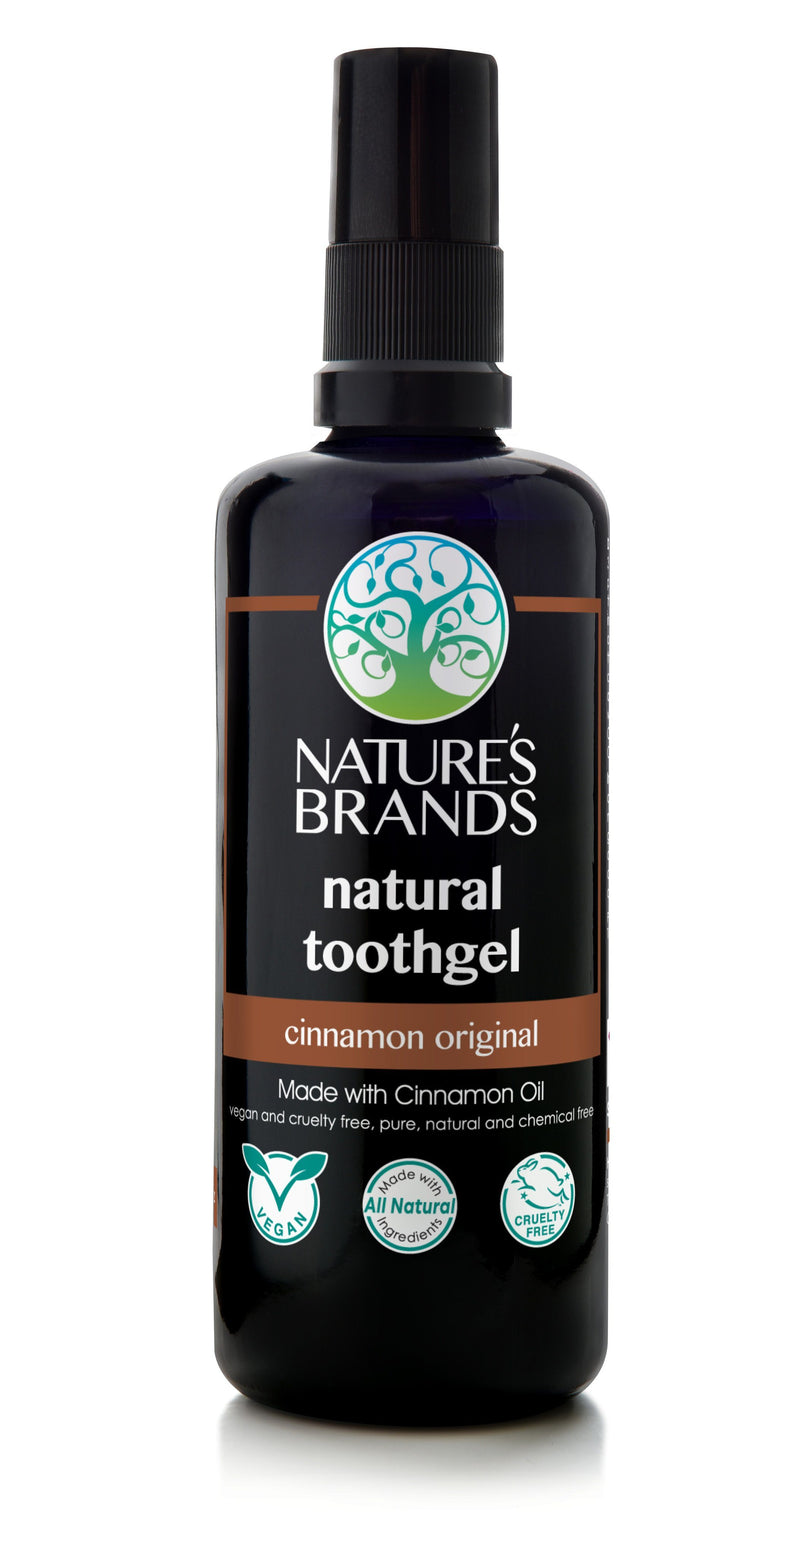 Herbal Choice Mari Natural Toothgel - Herbal Choice Mari Natural Toothgel - 3.4floz